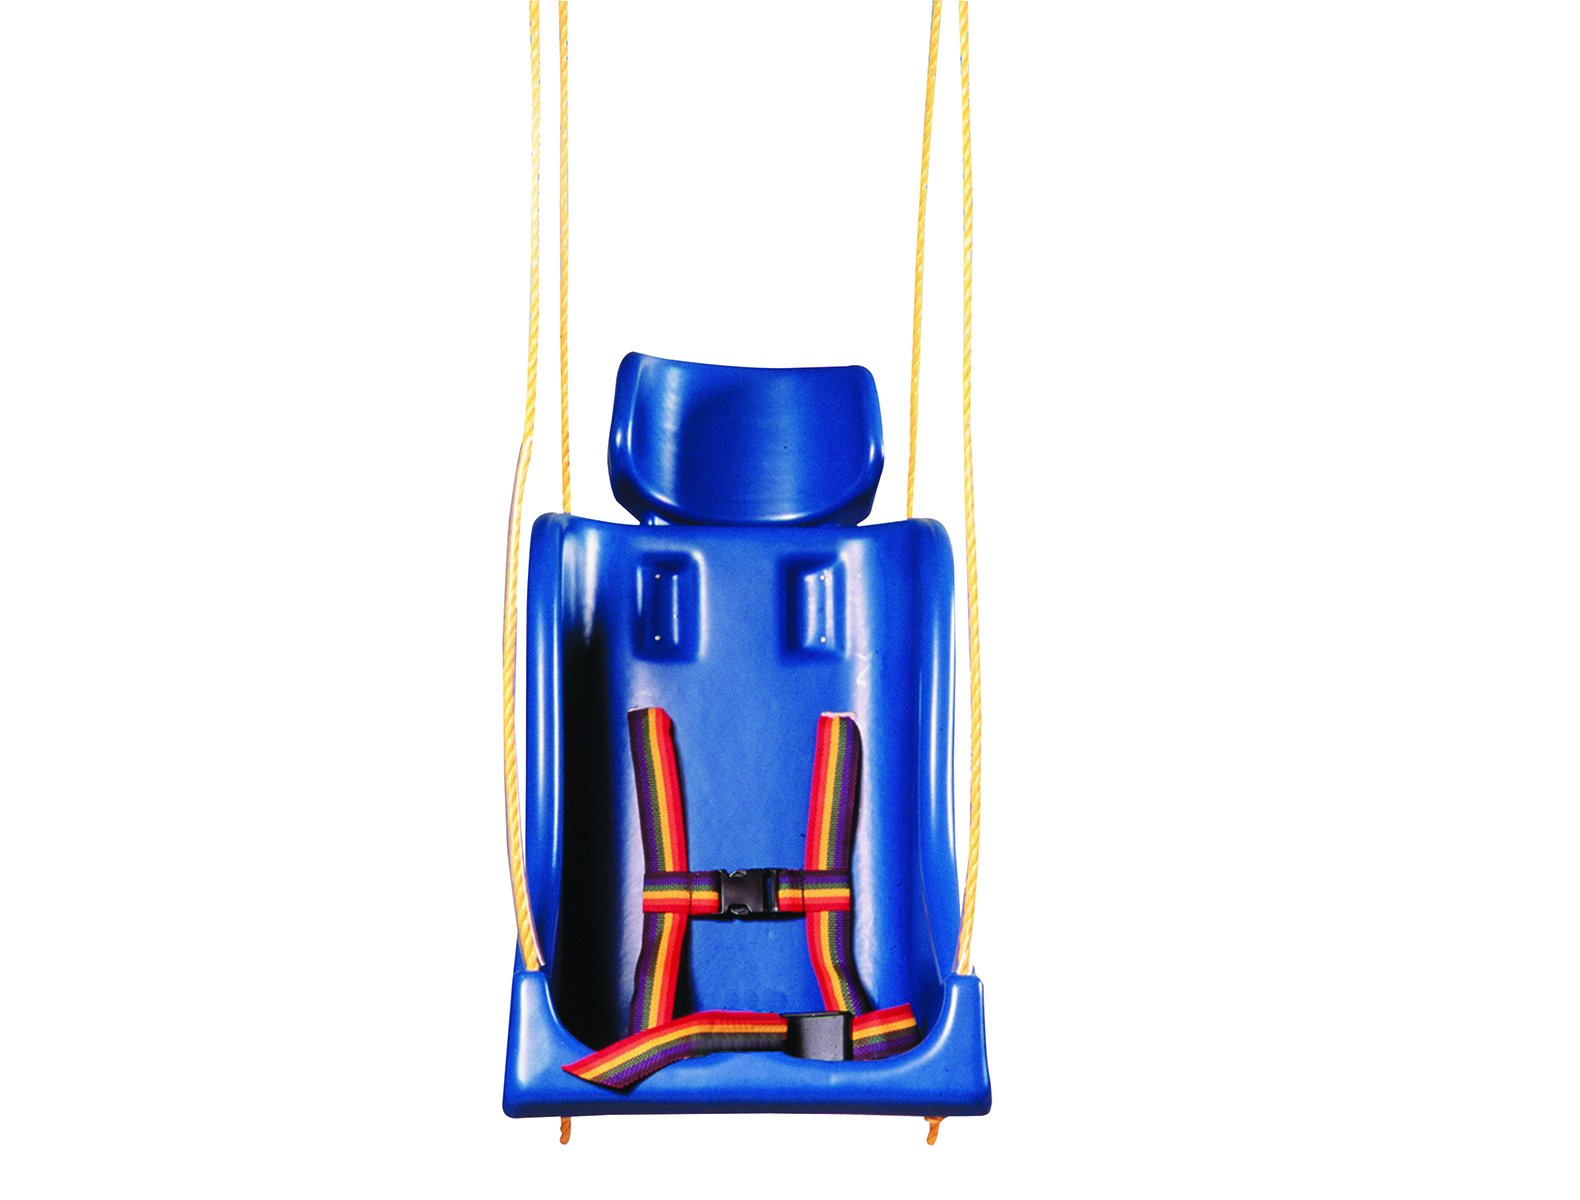 Skillbuilders 30-1593 Full Support Swing Seat without Pommel, Chain, Small (Child) by Skillbuilders